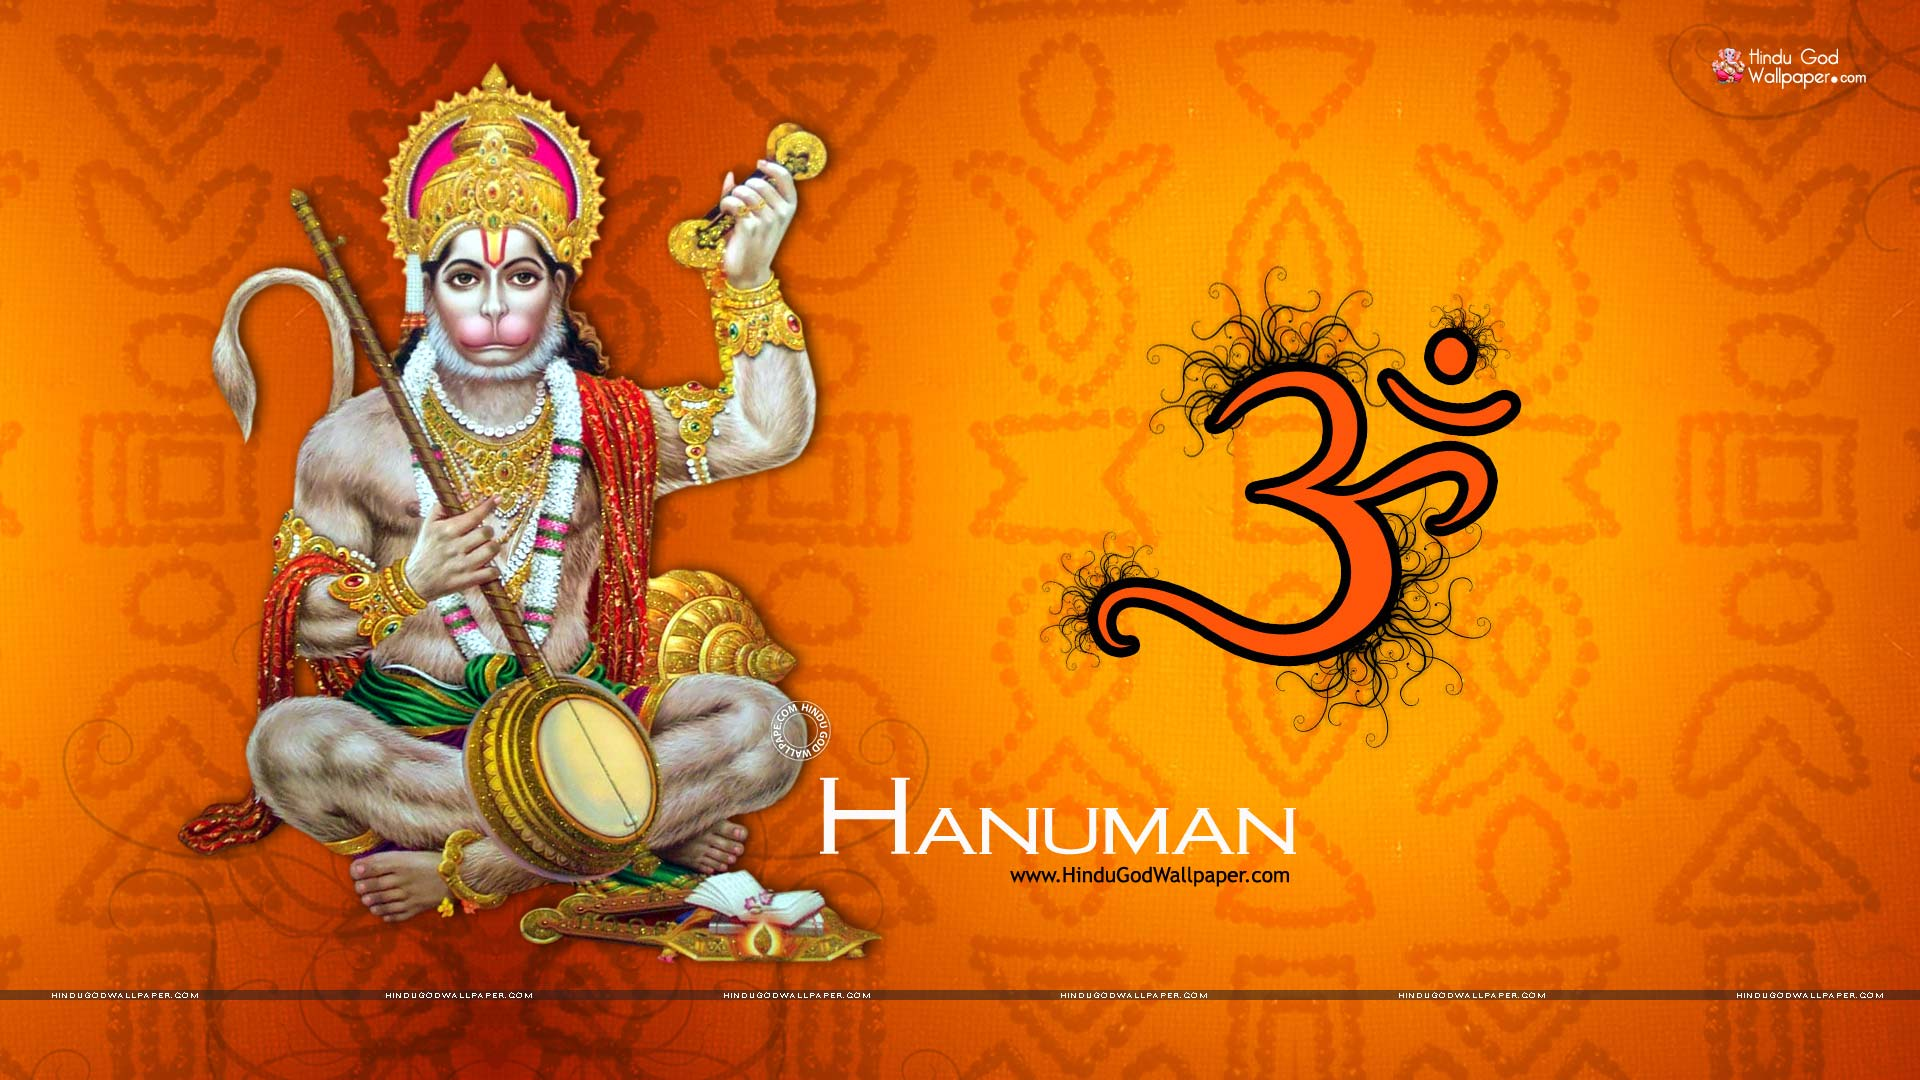 God hindu images wallpapers wallpaper cave - God images wallpapers ...